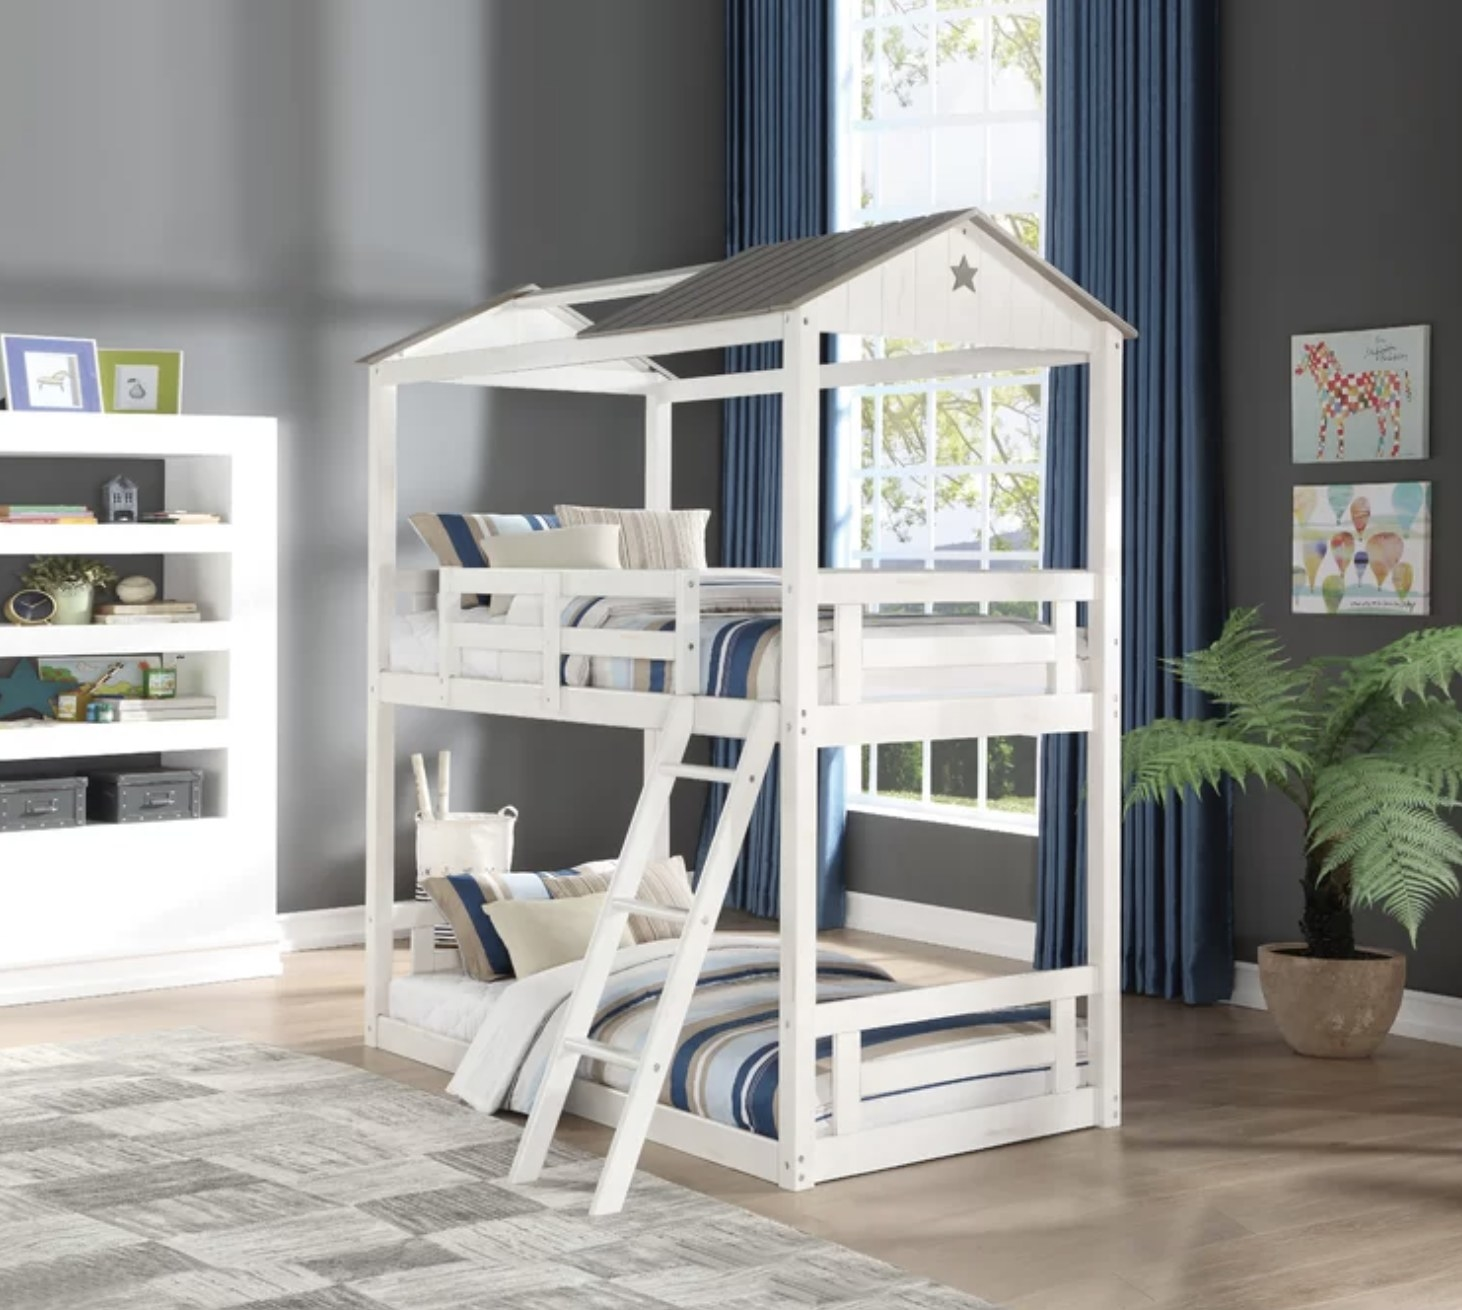 A white twin bunk bed